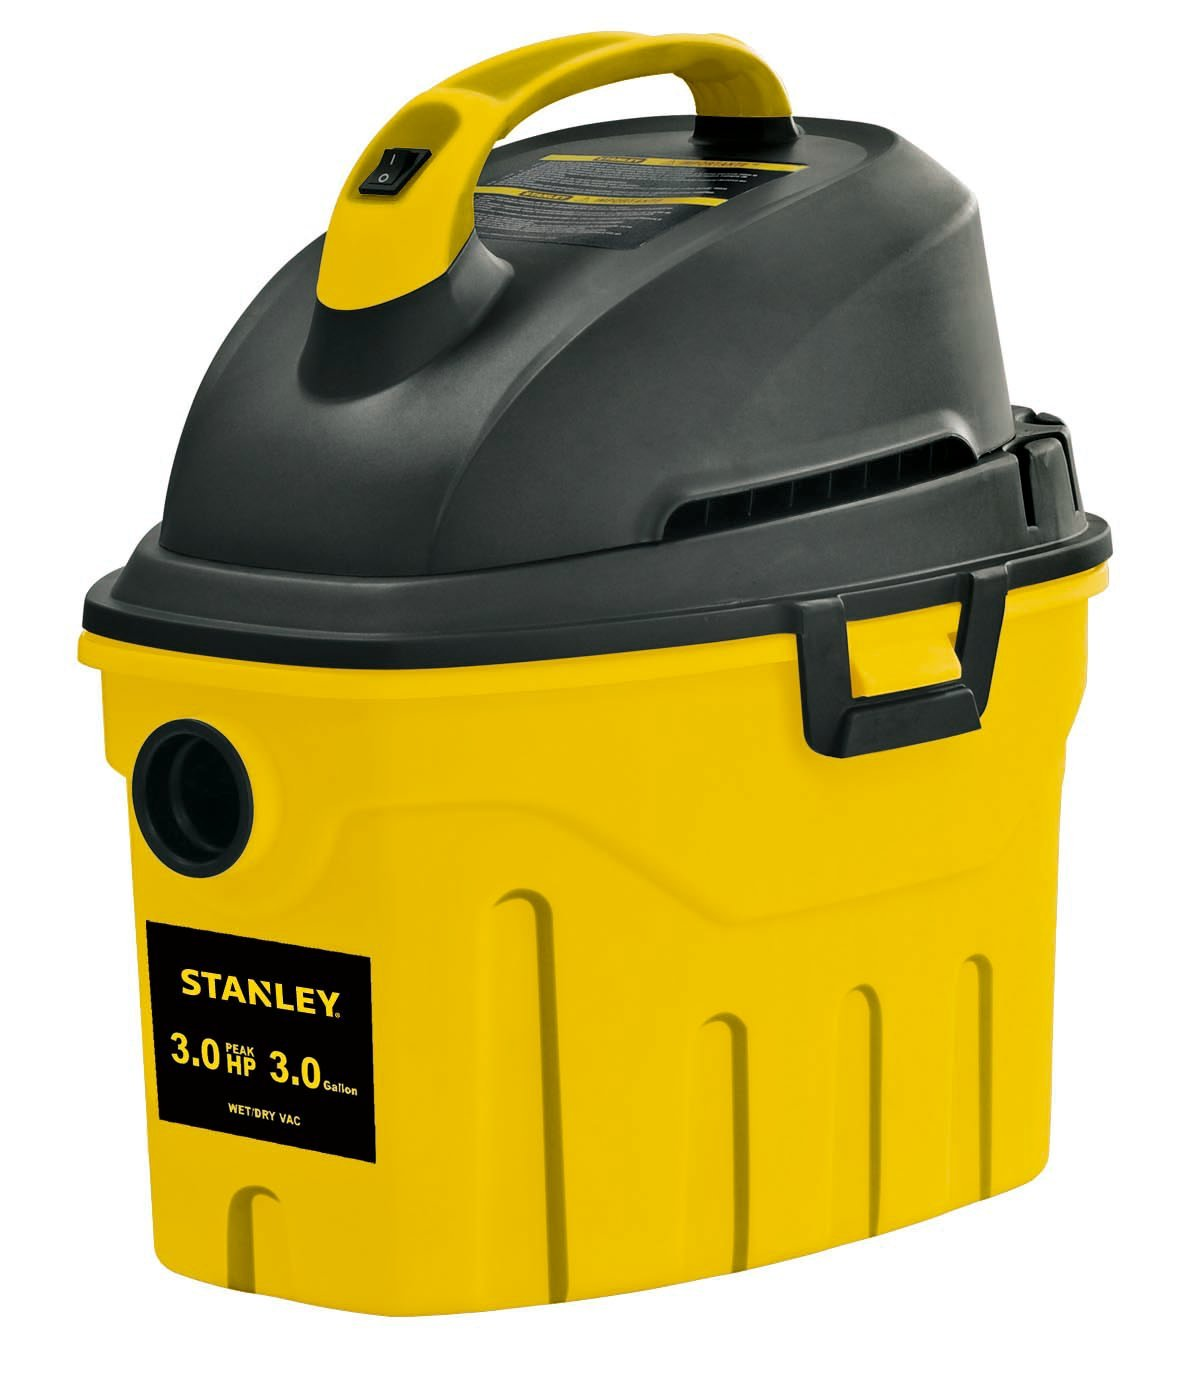 Stanley Wet/Dry Vacuum, 3 Gallon, 3 Horsepower by Stanley